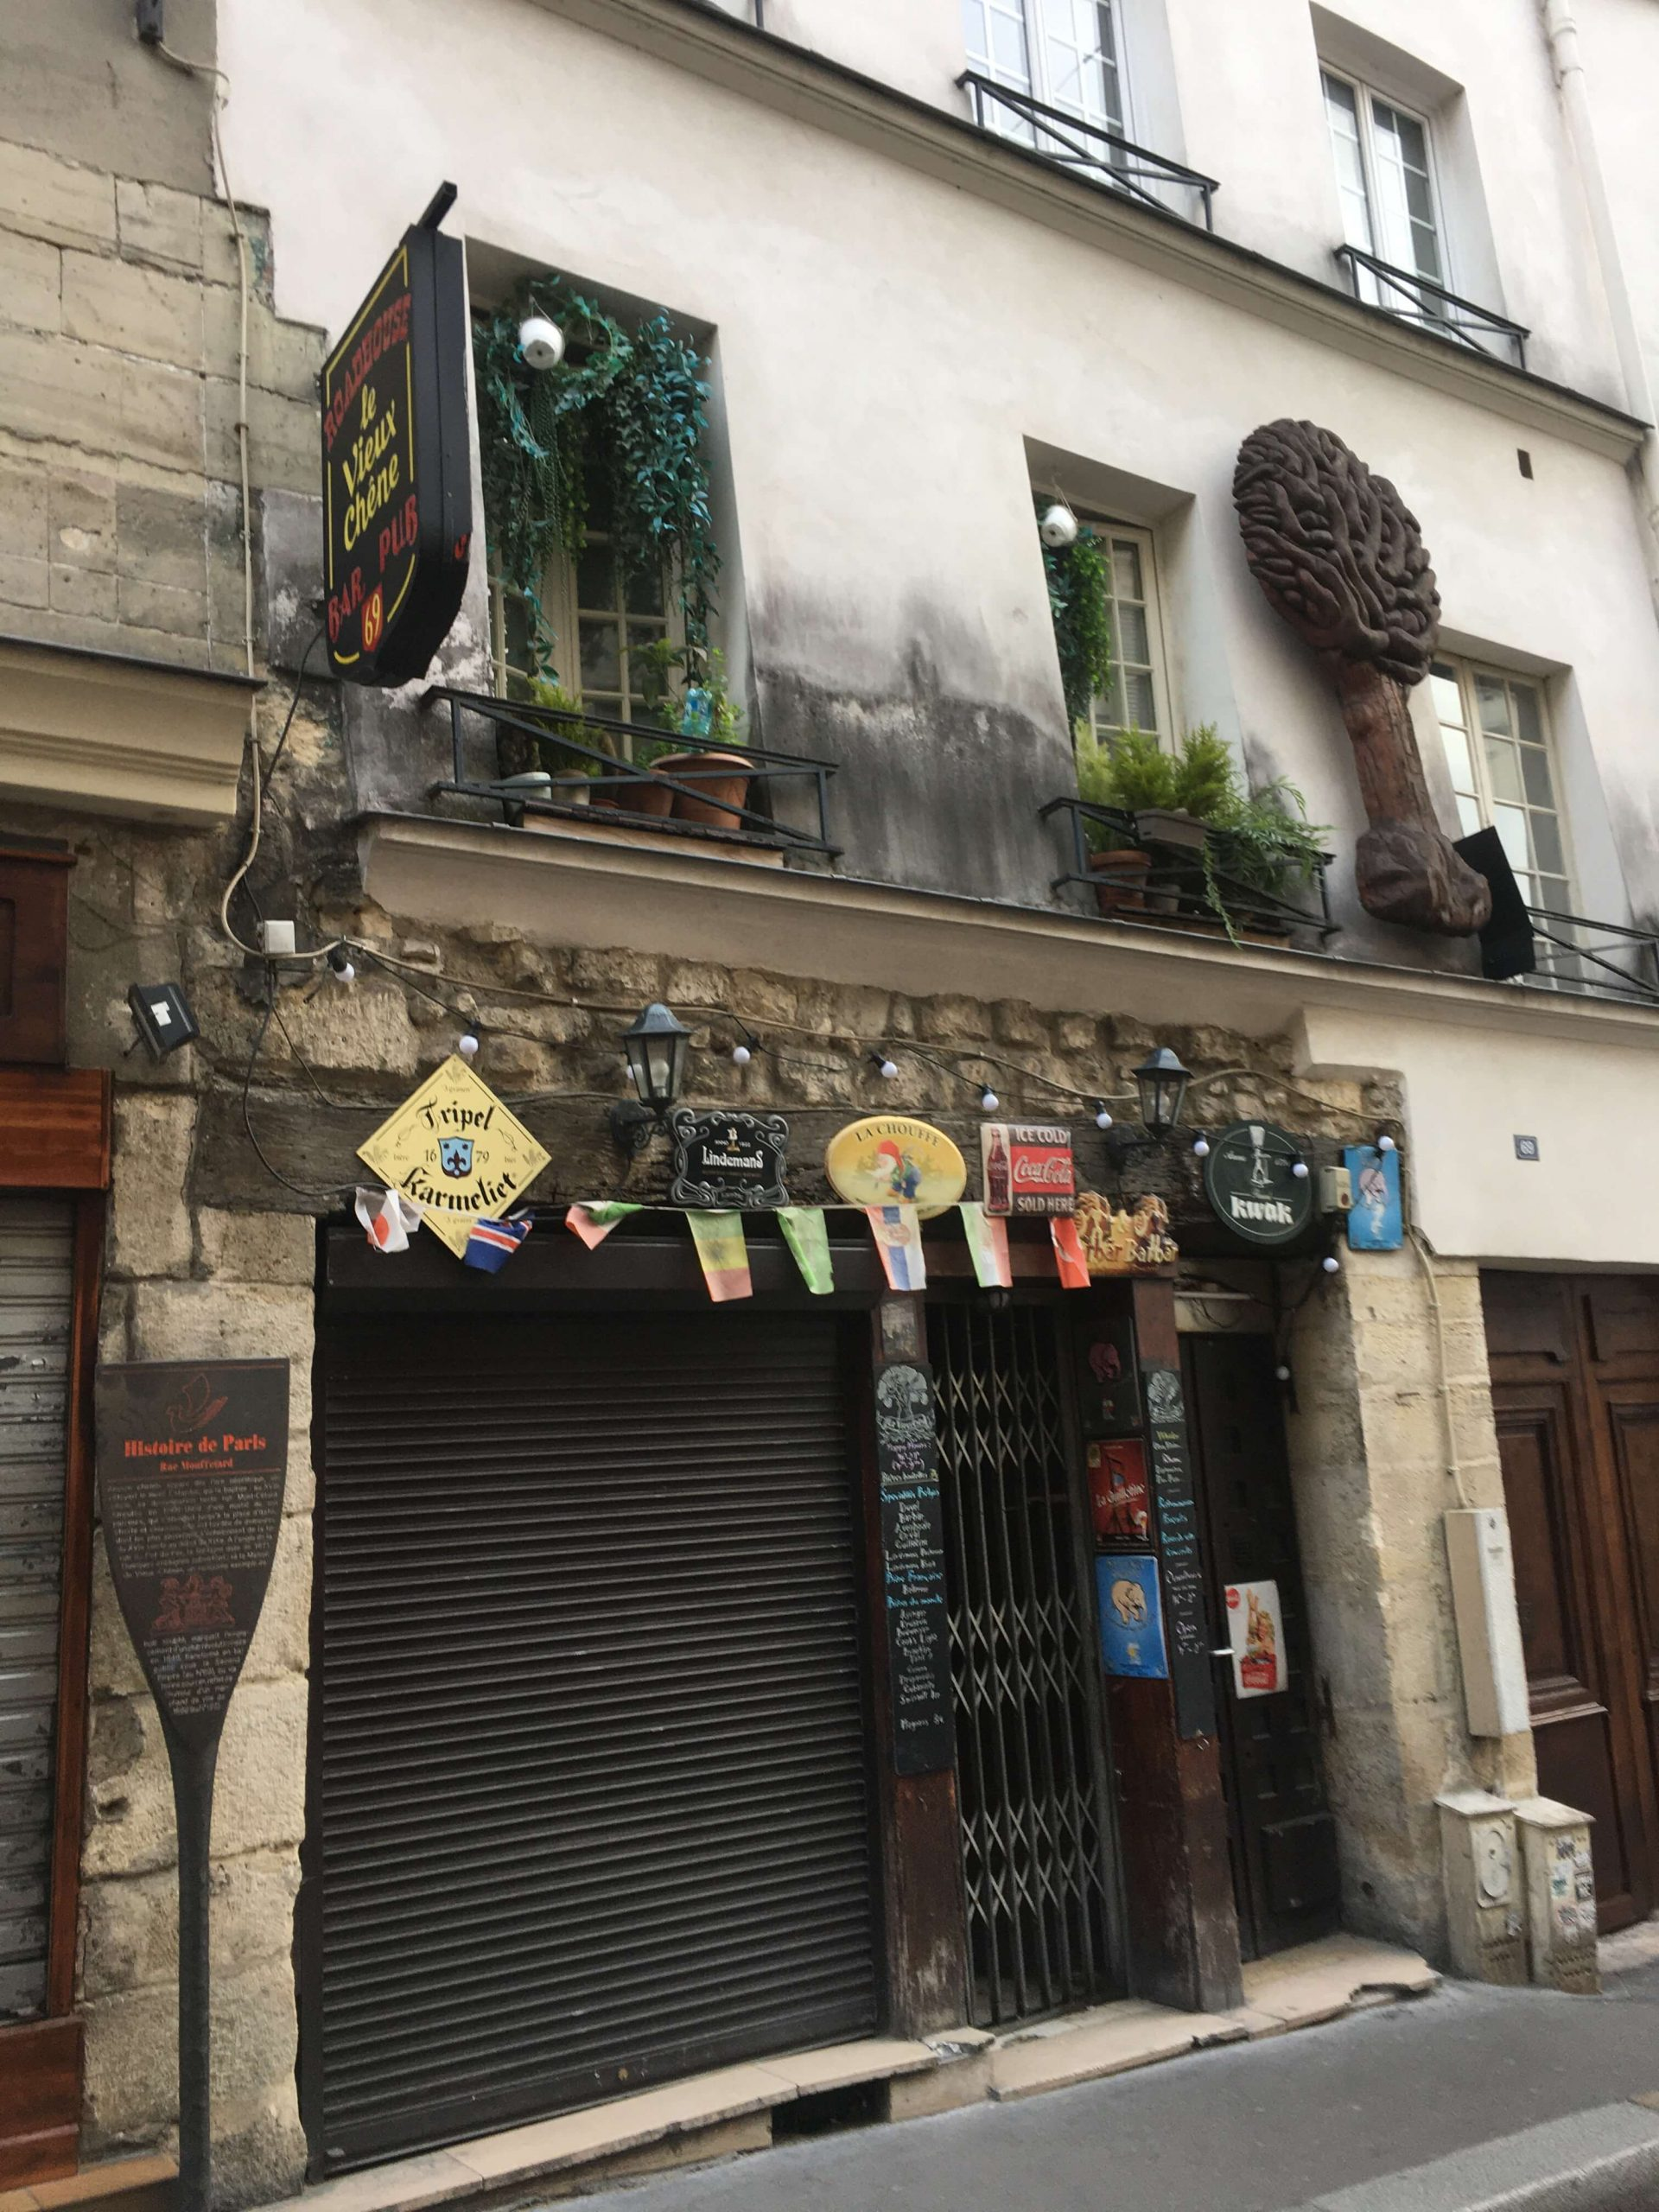 An old, very decorated storefront on rue Mouffetard